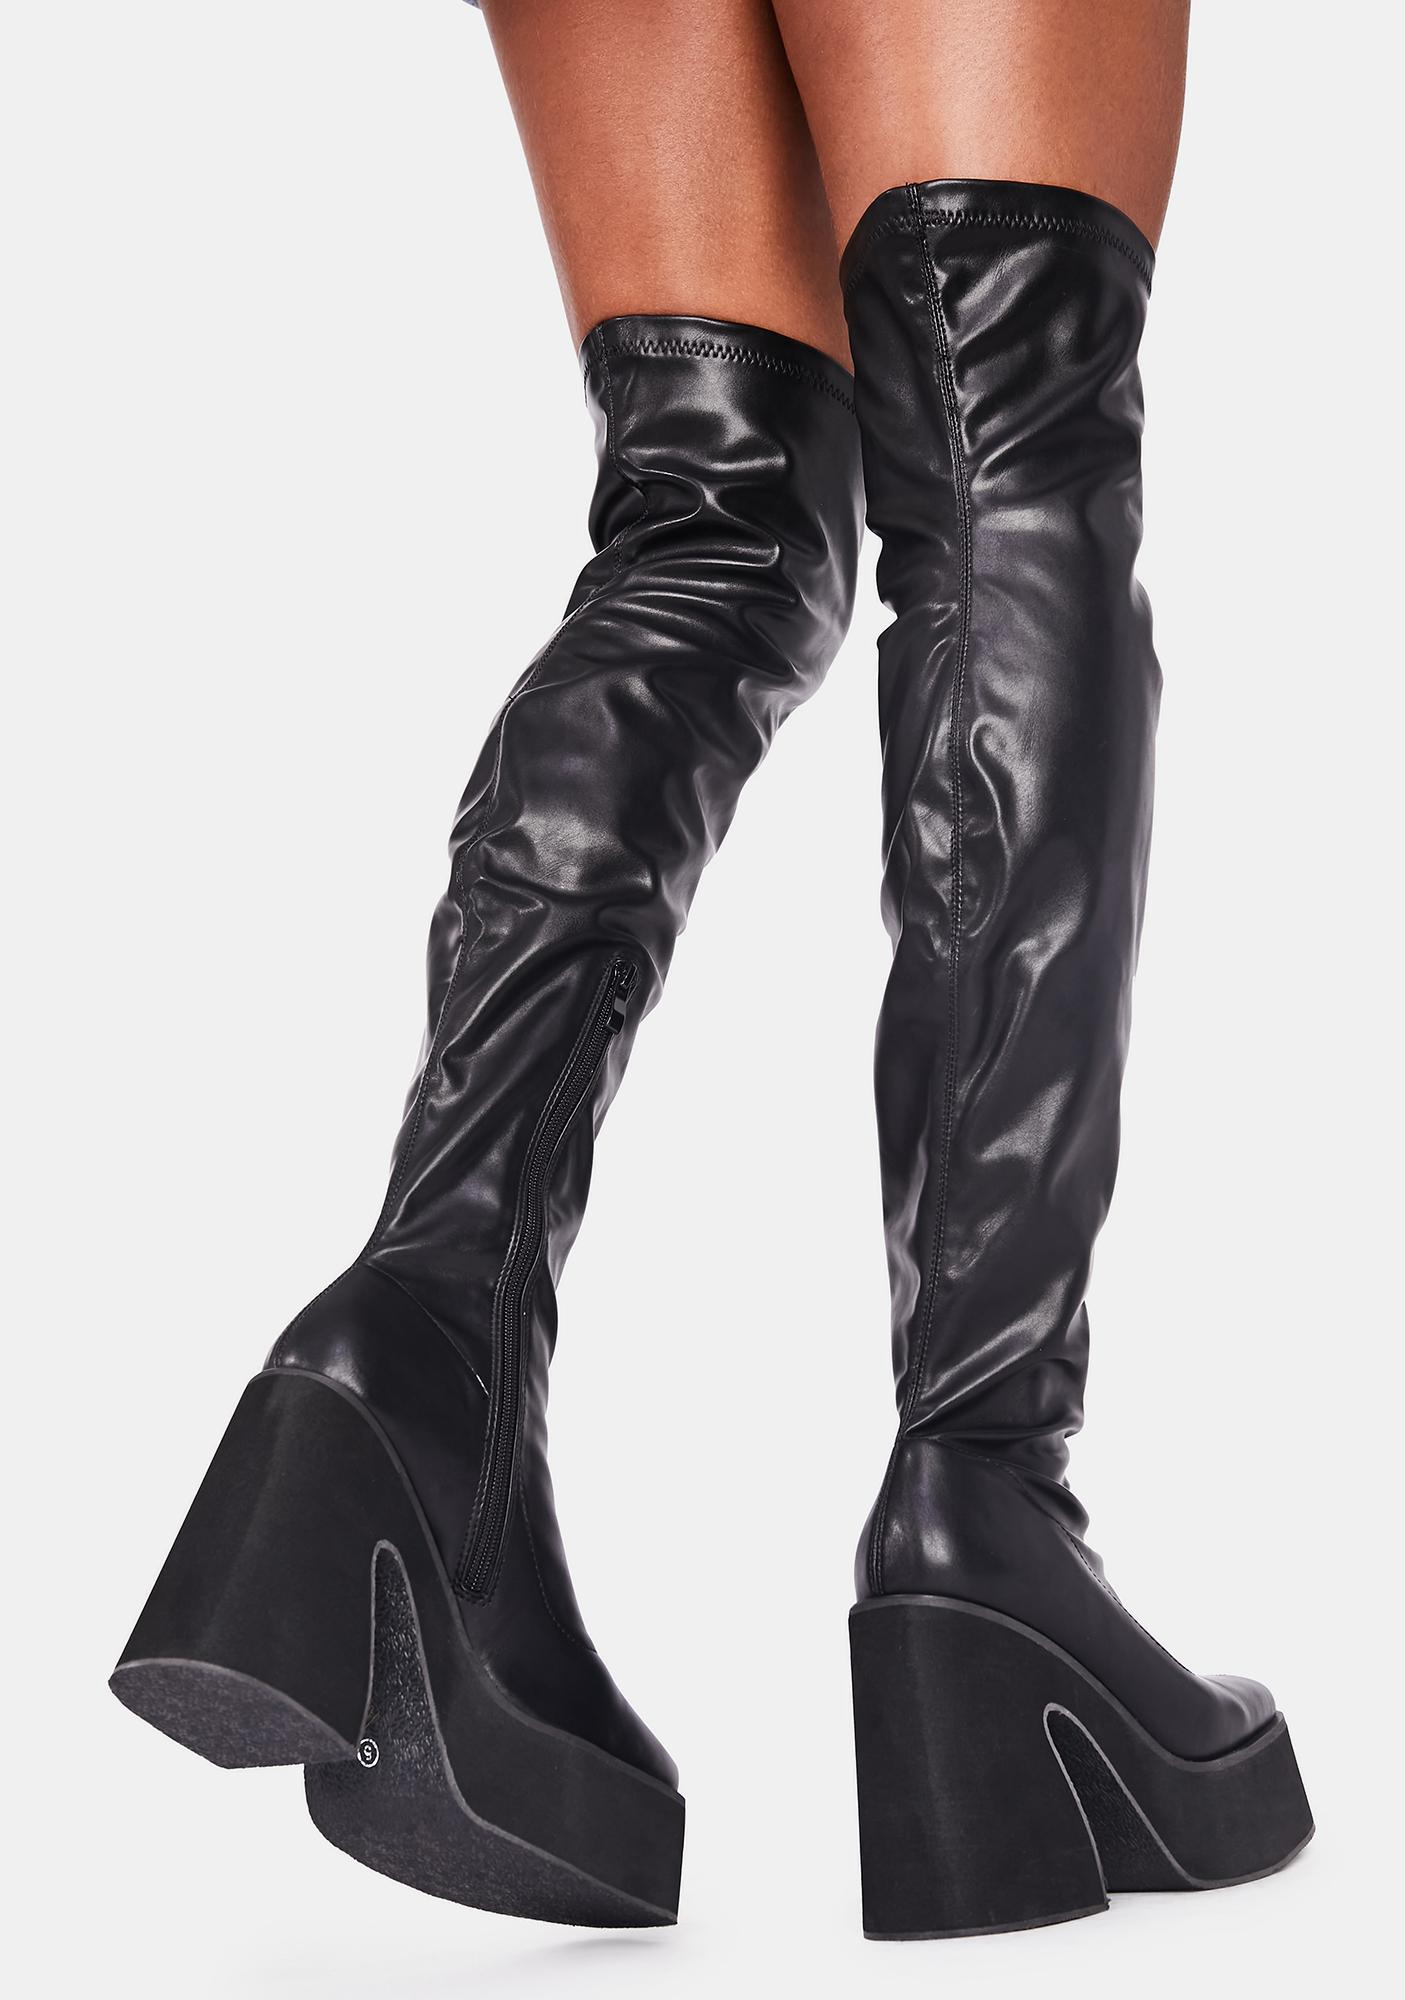 Koi Footwear Platform Thigh High Boots